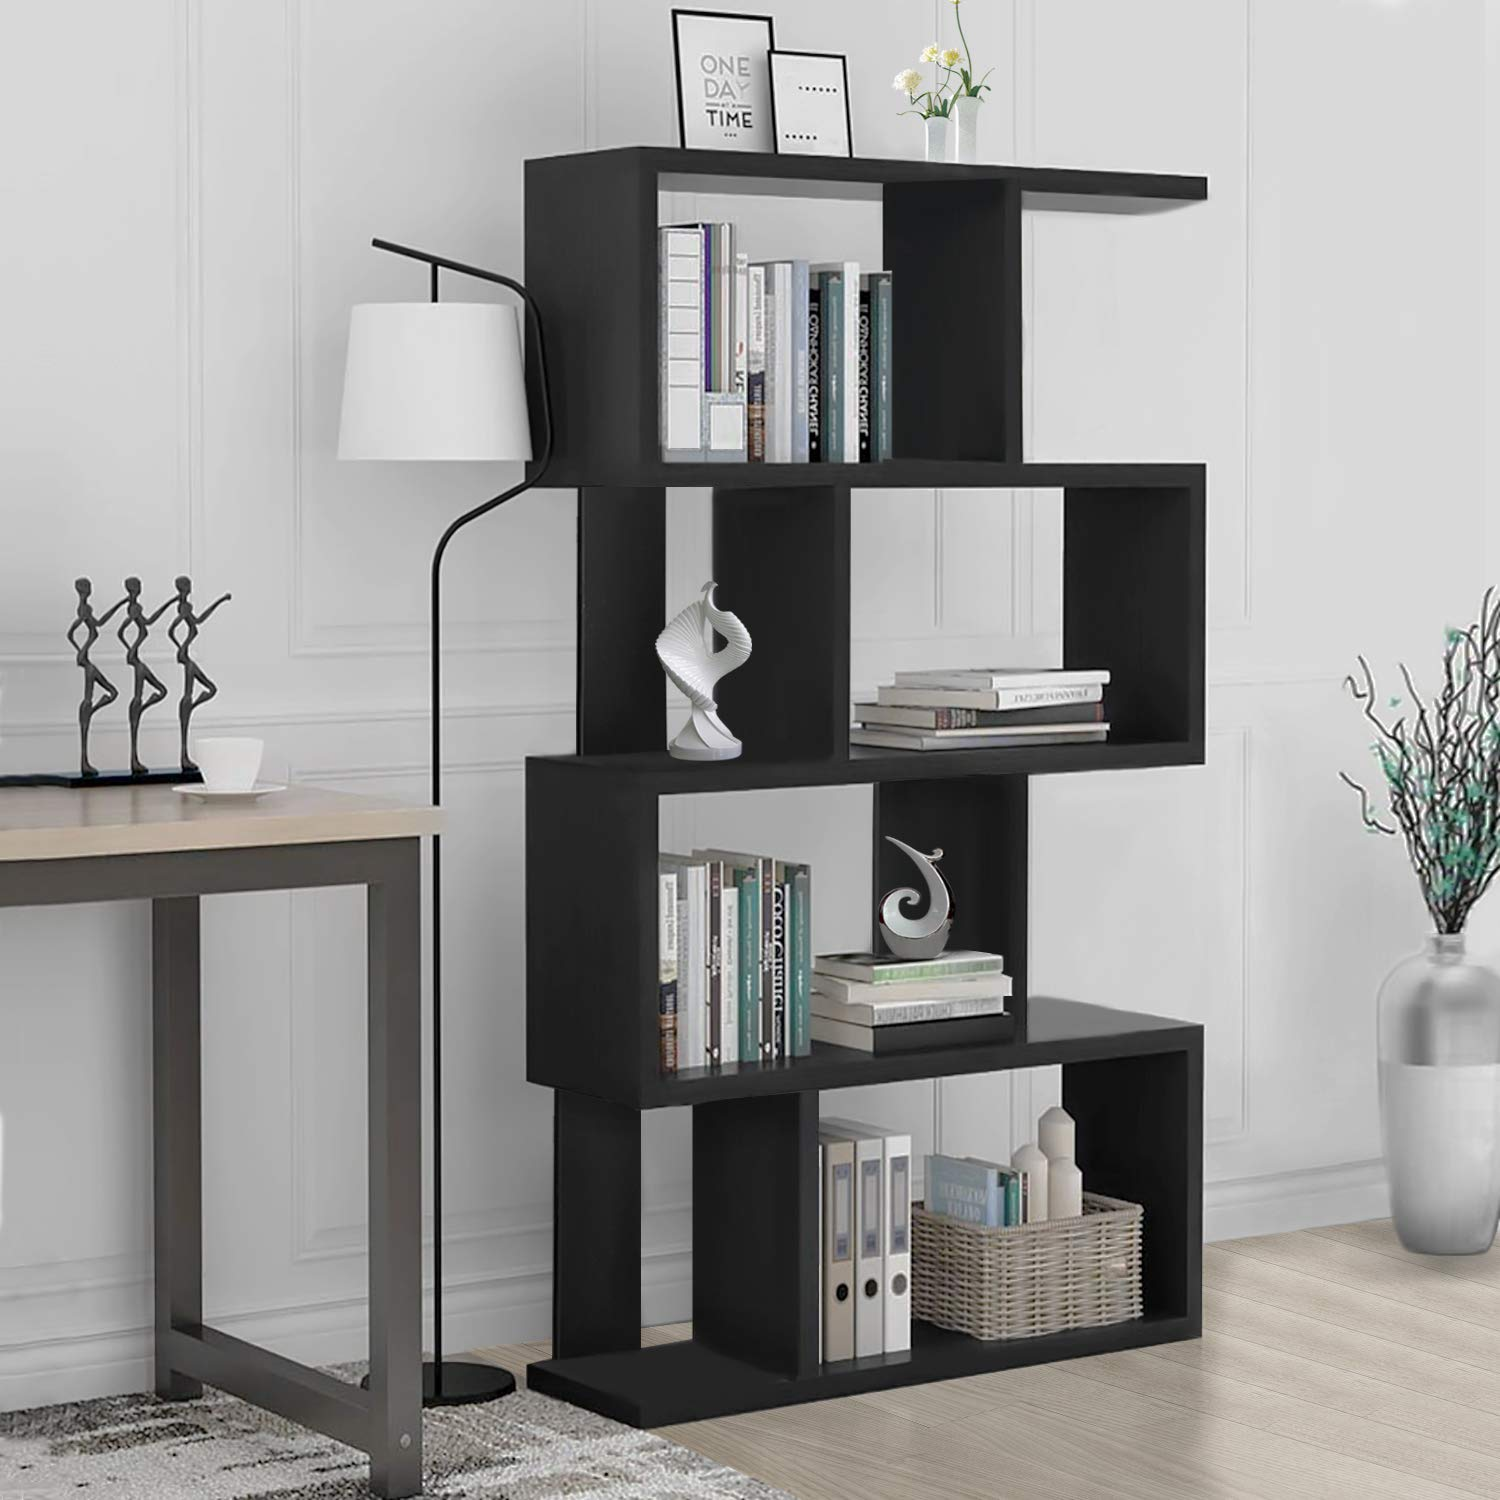 S Shaped Bookcase Z-Shelf Style Bookcase Asymmetrical Snaking Bookcase  Storage Display Modern Industrial  Bookshelf